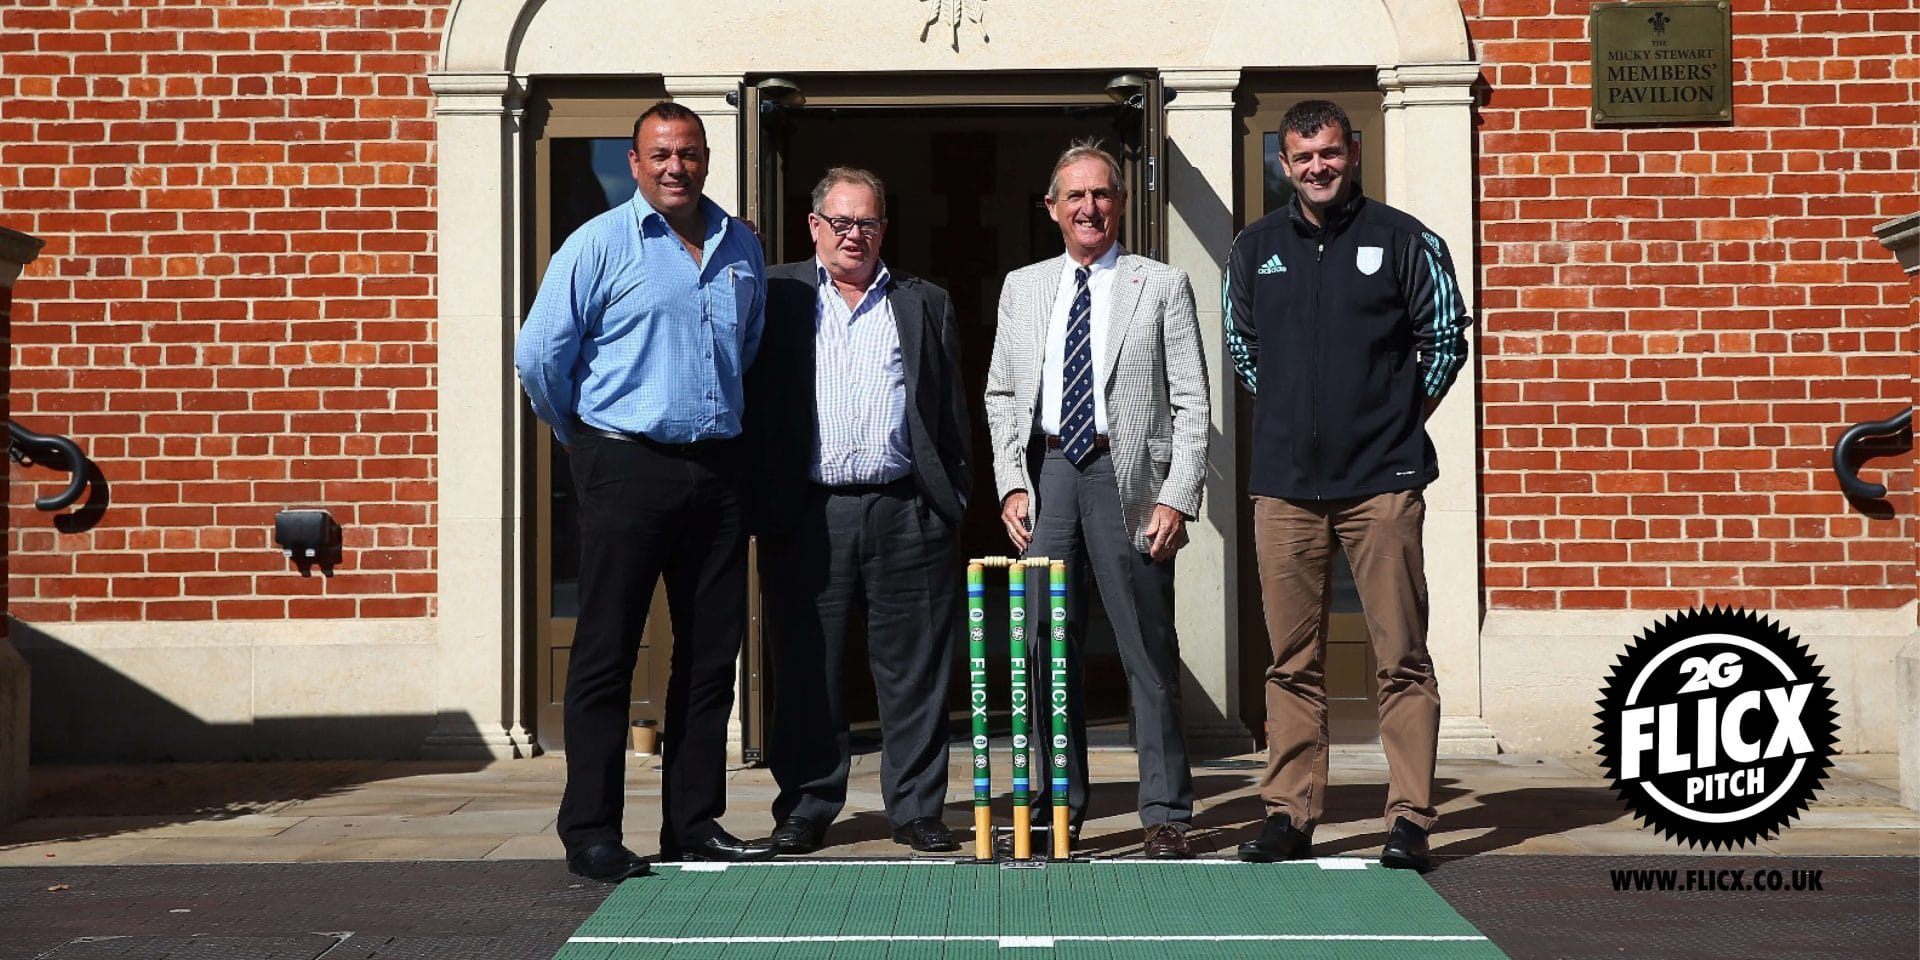 Enhancing State School Cricket Facilities